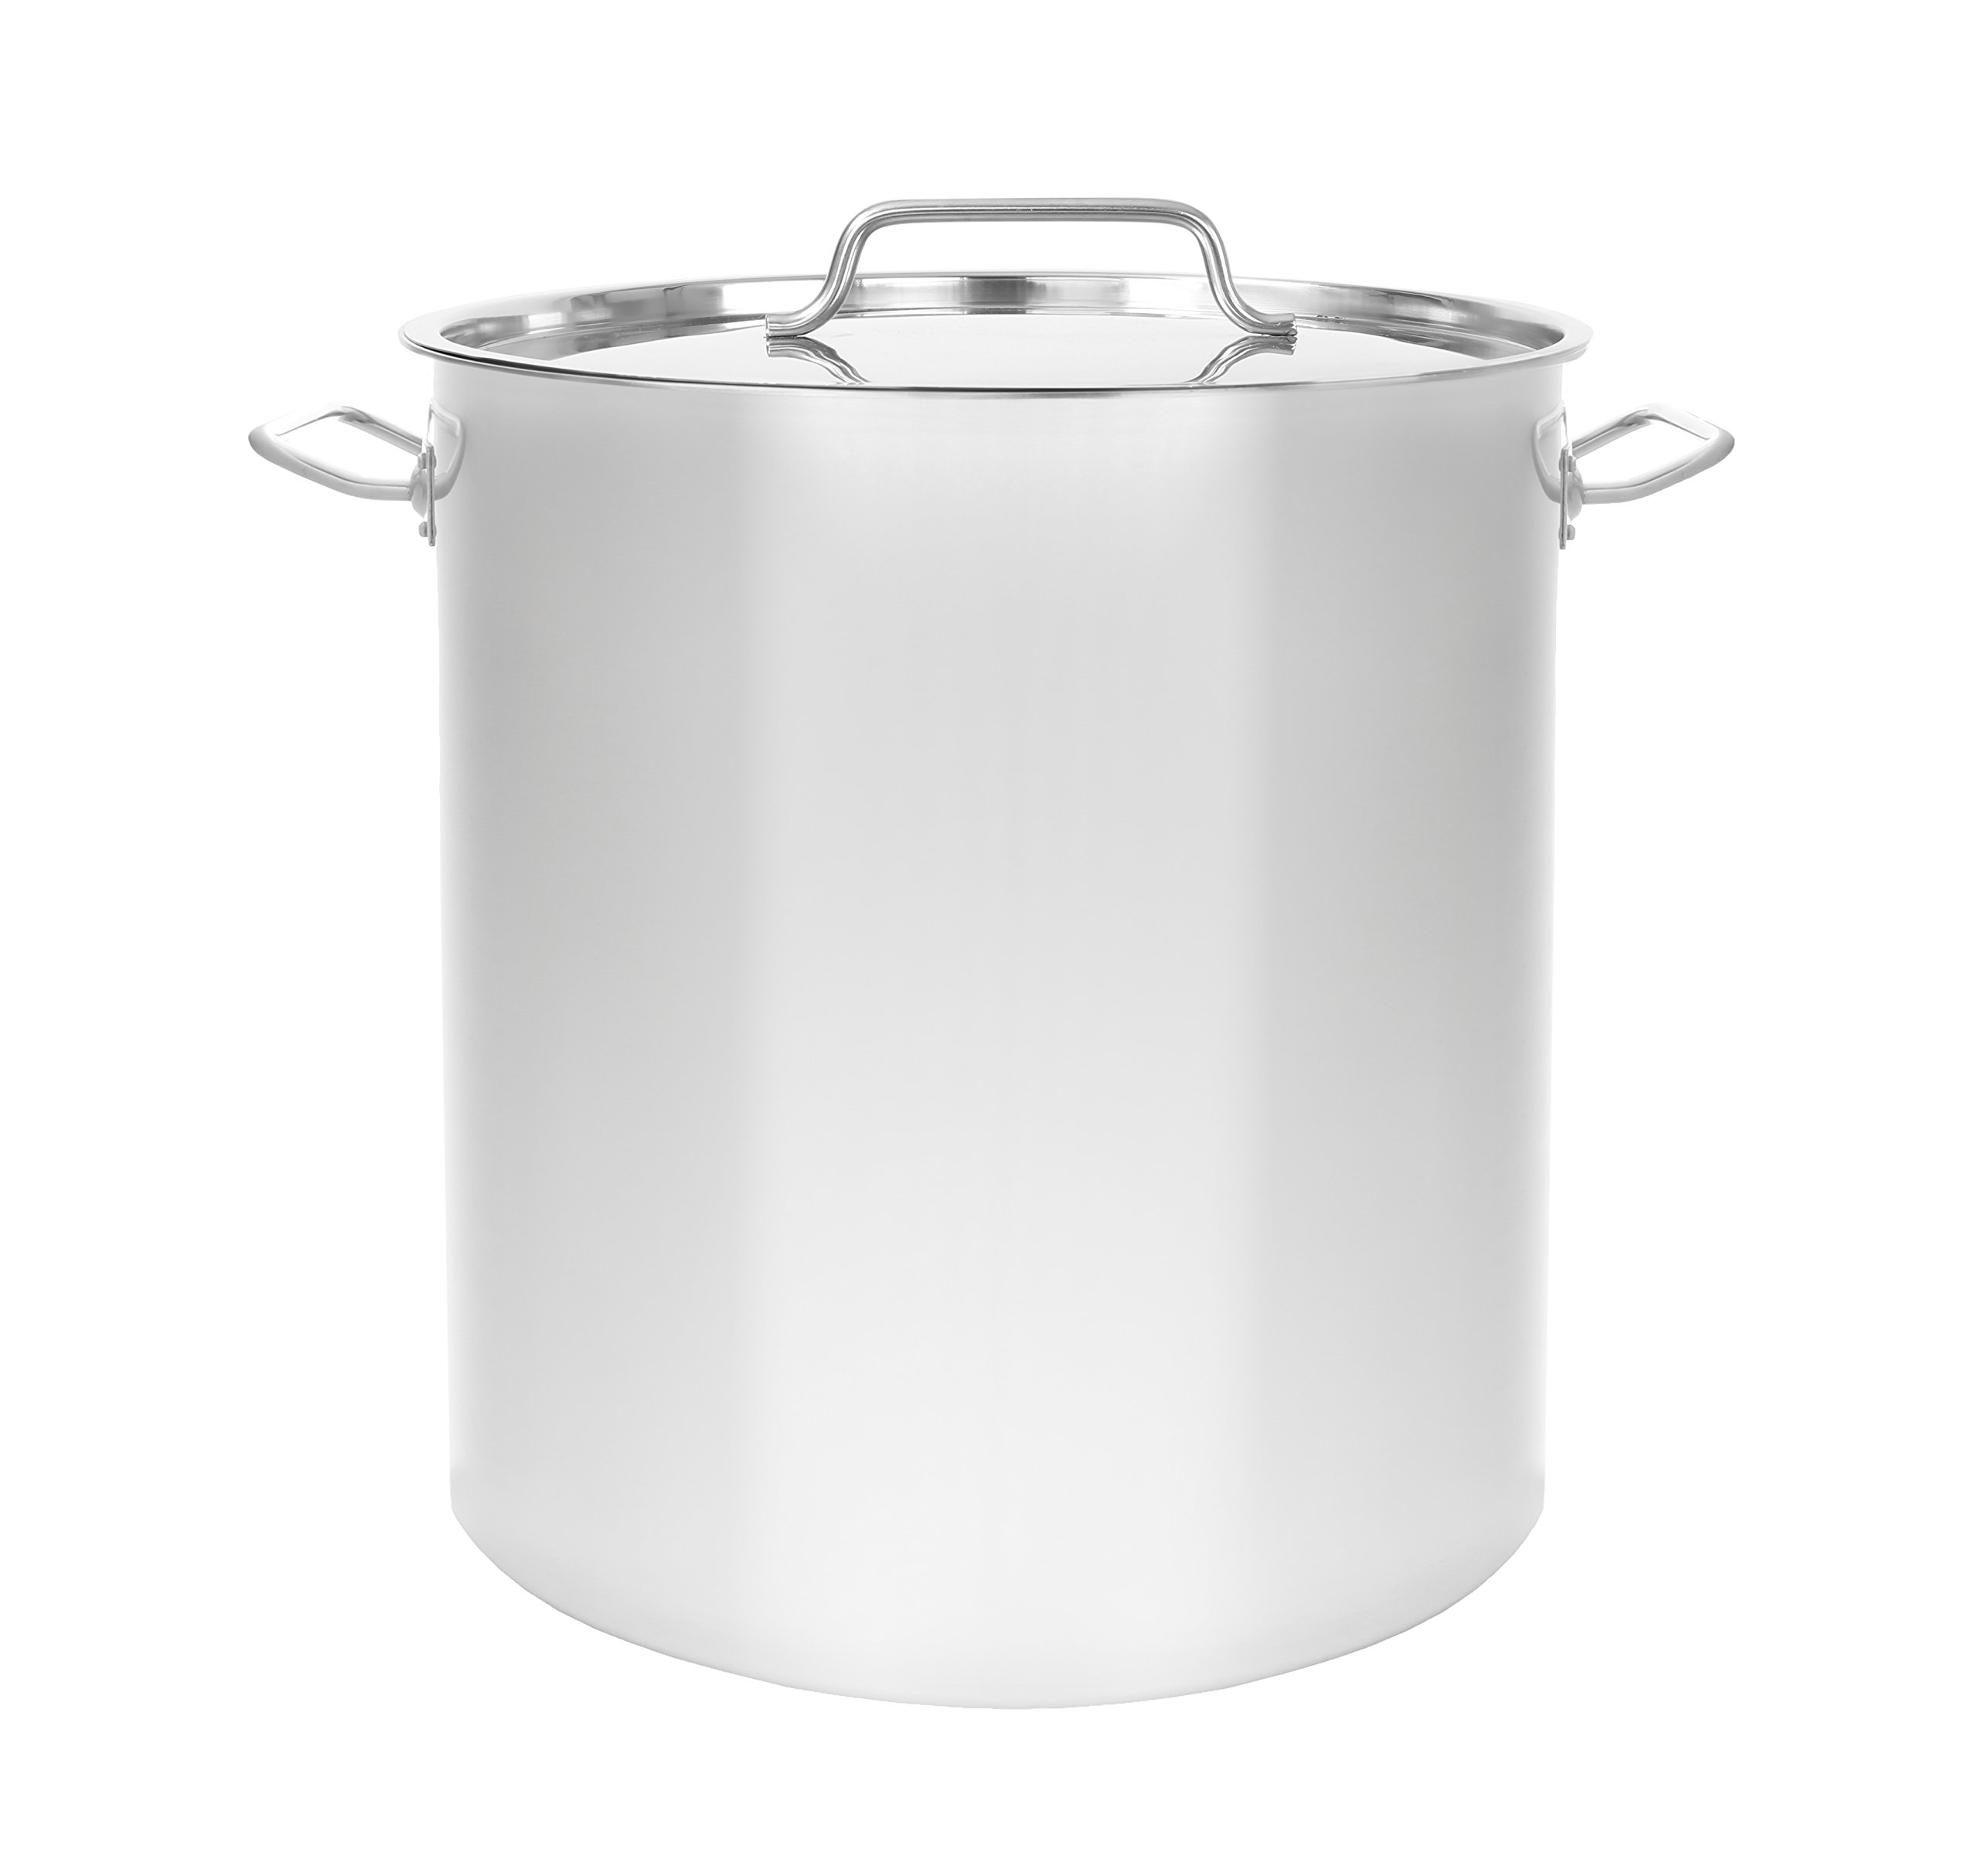 CONCORD Triply Bottom Stainless Steel Stock Pot Home Brew Kettle (100 QT) by Concord Cookware